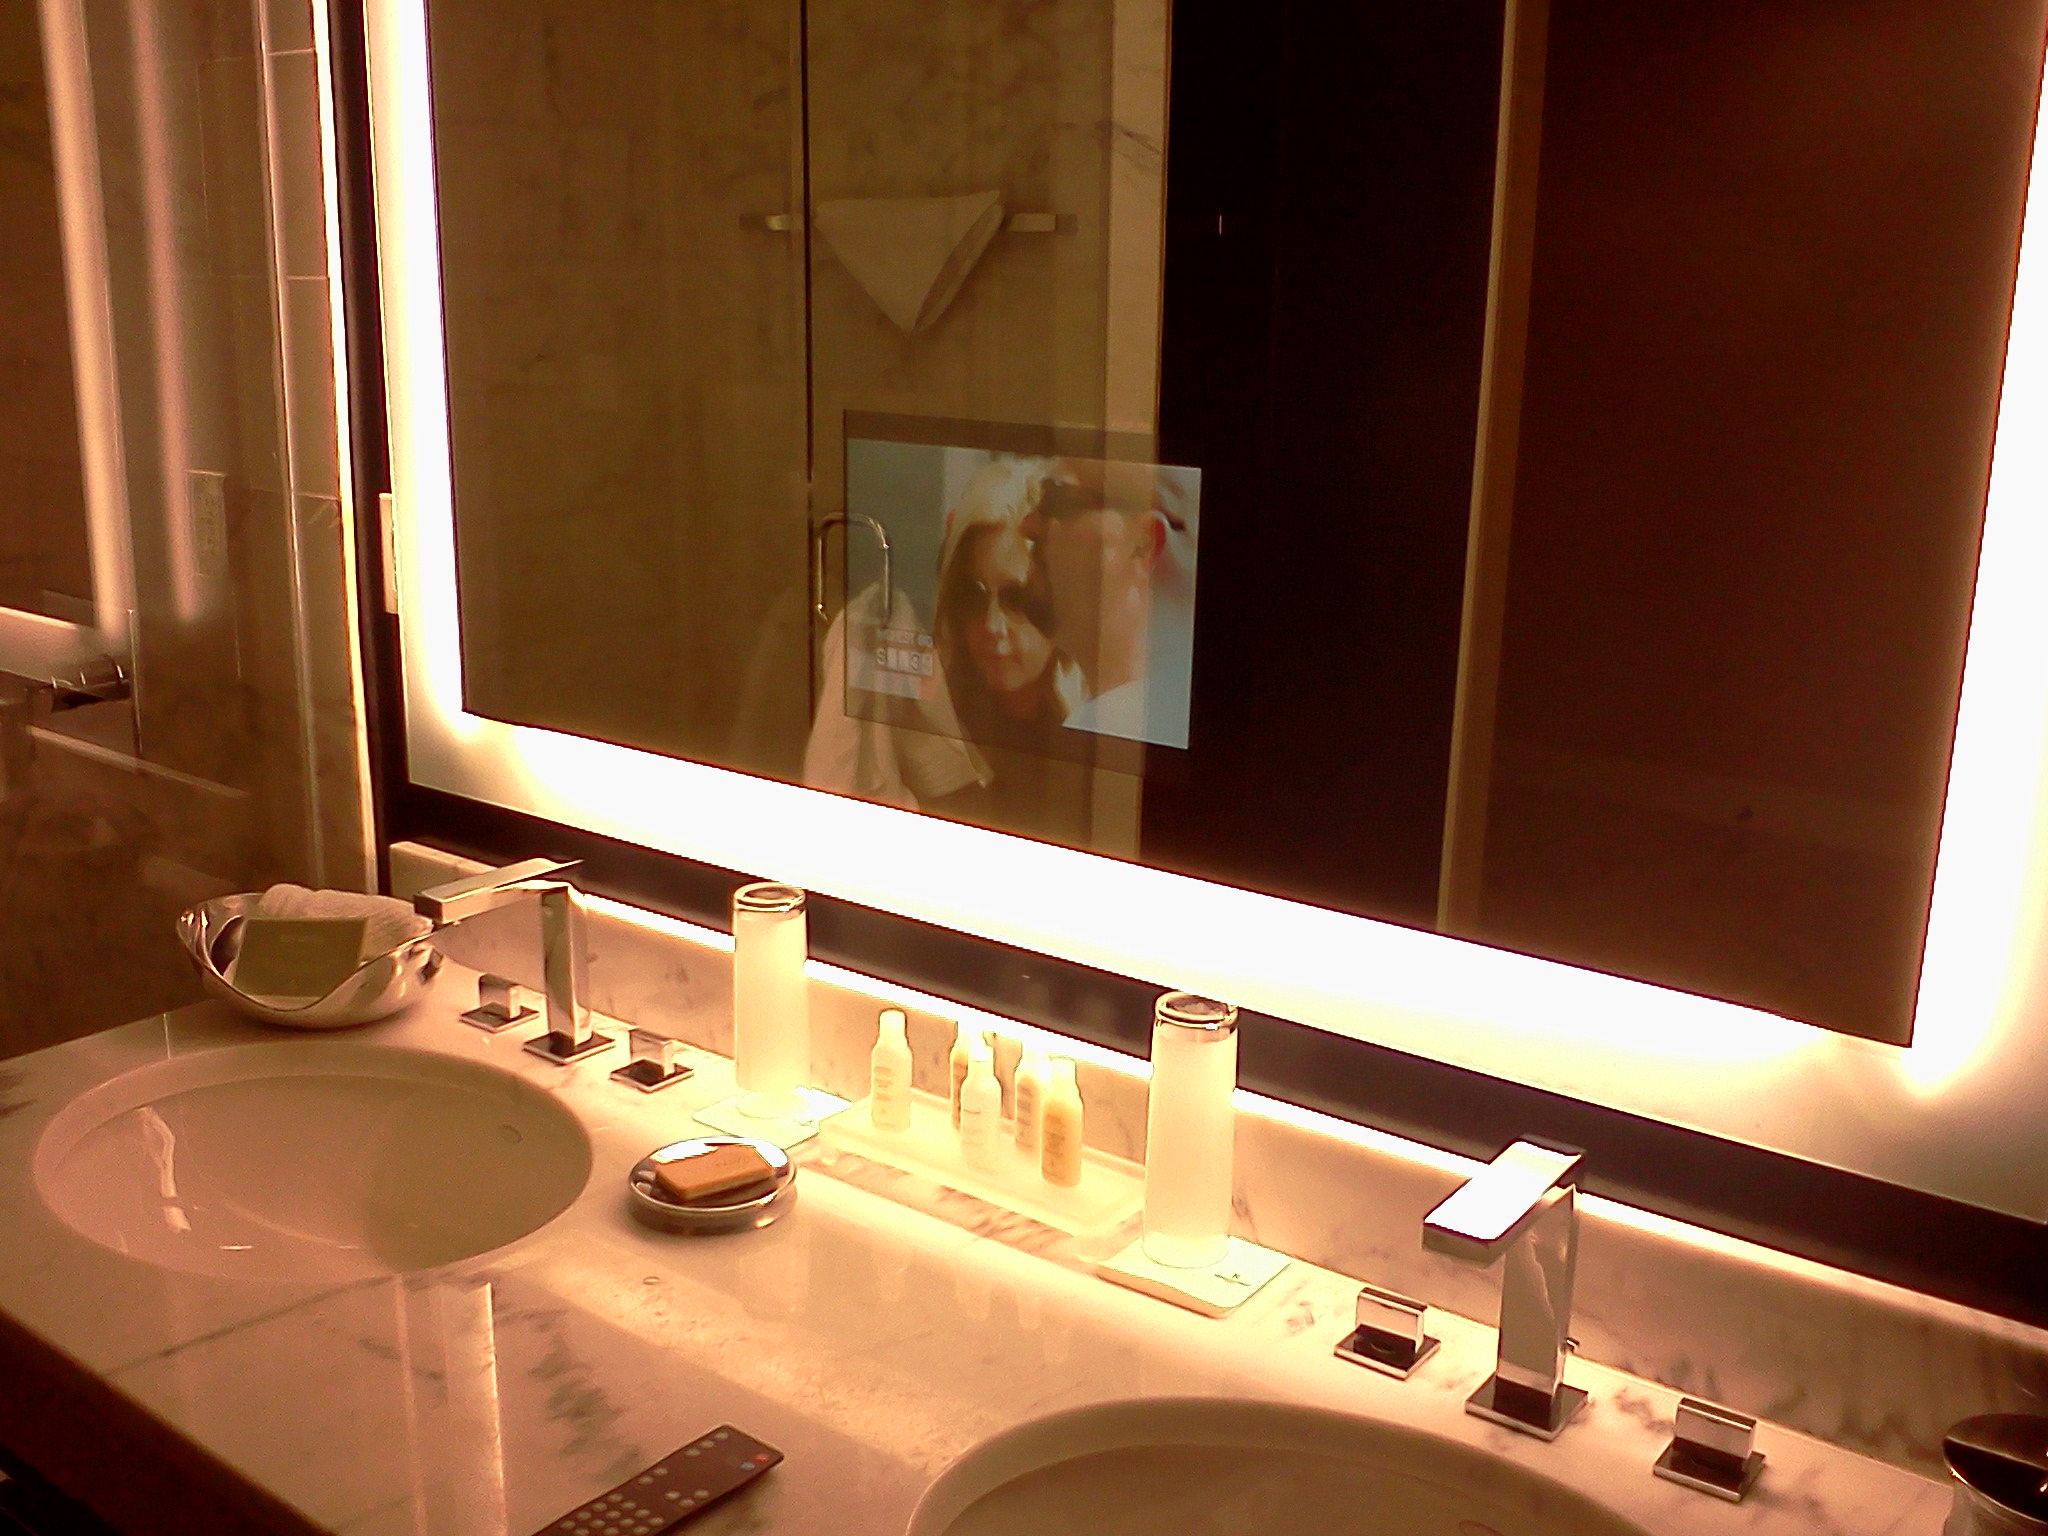 Tv for television in mirror for bathroom yes for Tv in bathroom ideas